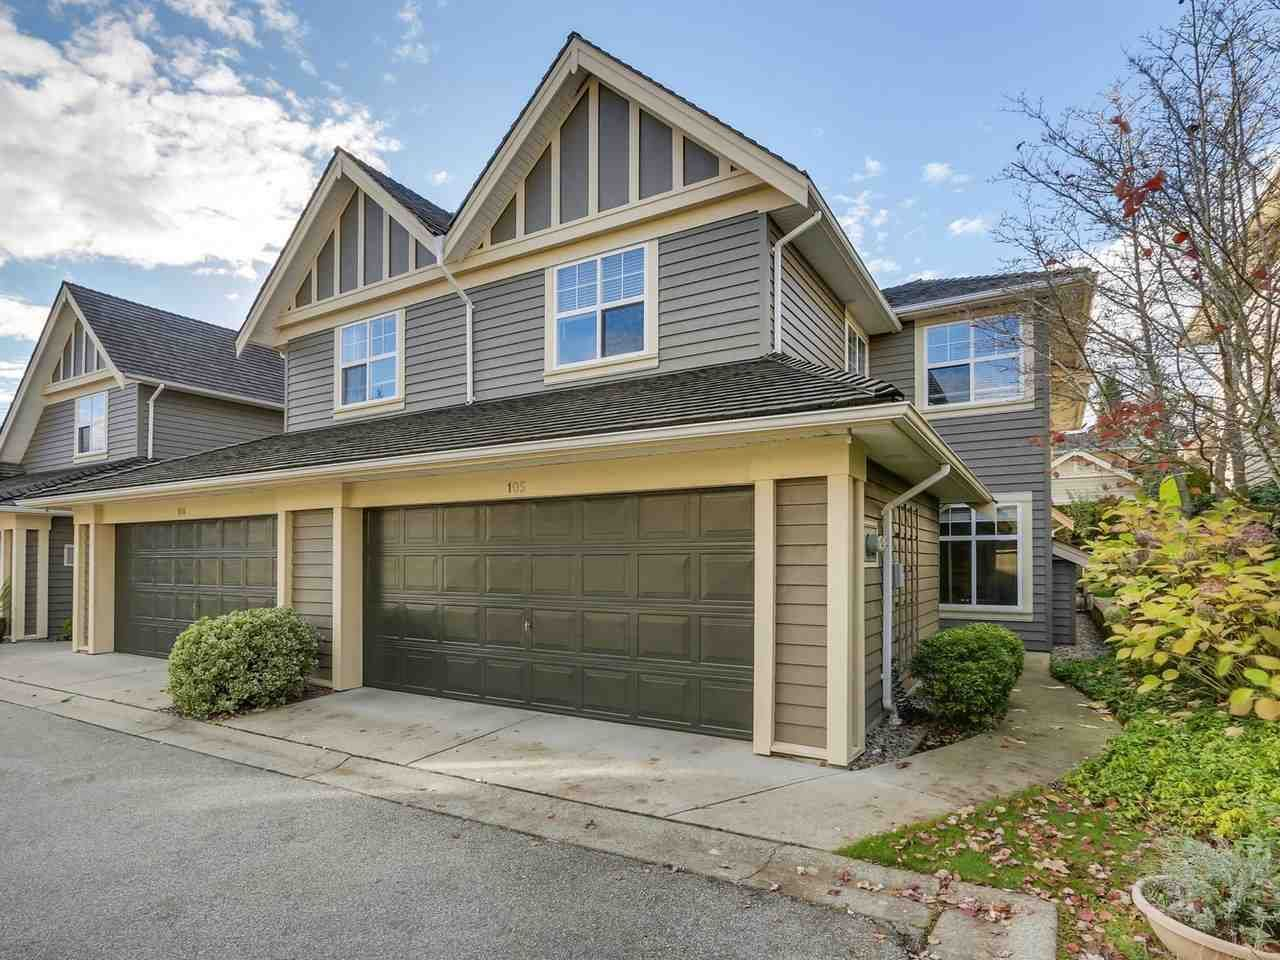 """Main Photo: 105 15500 ROSEMARY HEIGHTS Crescent in Surrey: Morgan Creek Townhouse for sale in """"Carrington"""" (South Surrey White Rock)  : MLS®# R2354811"""